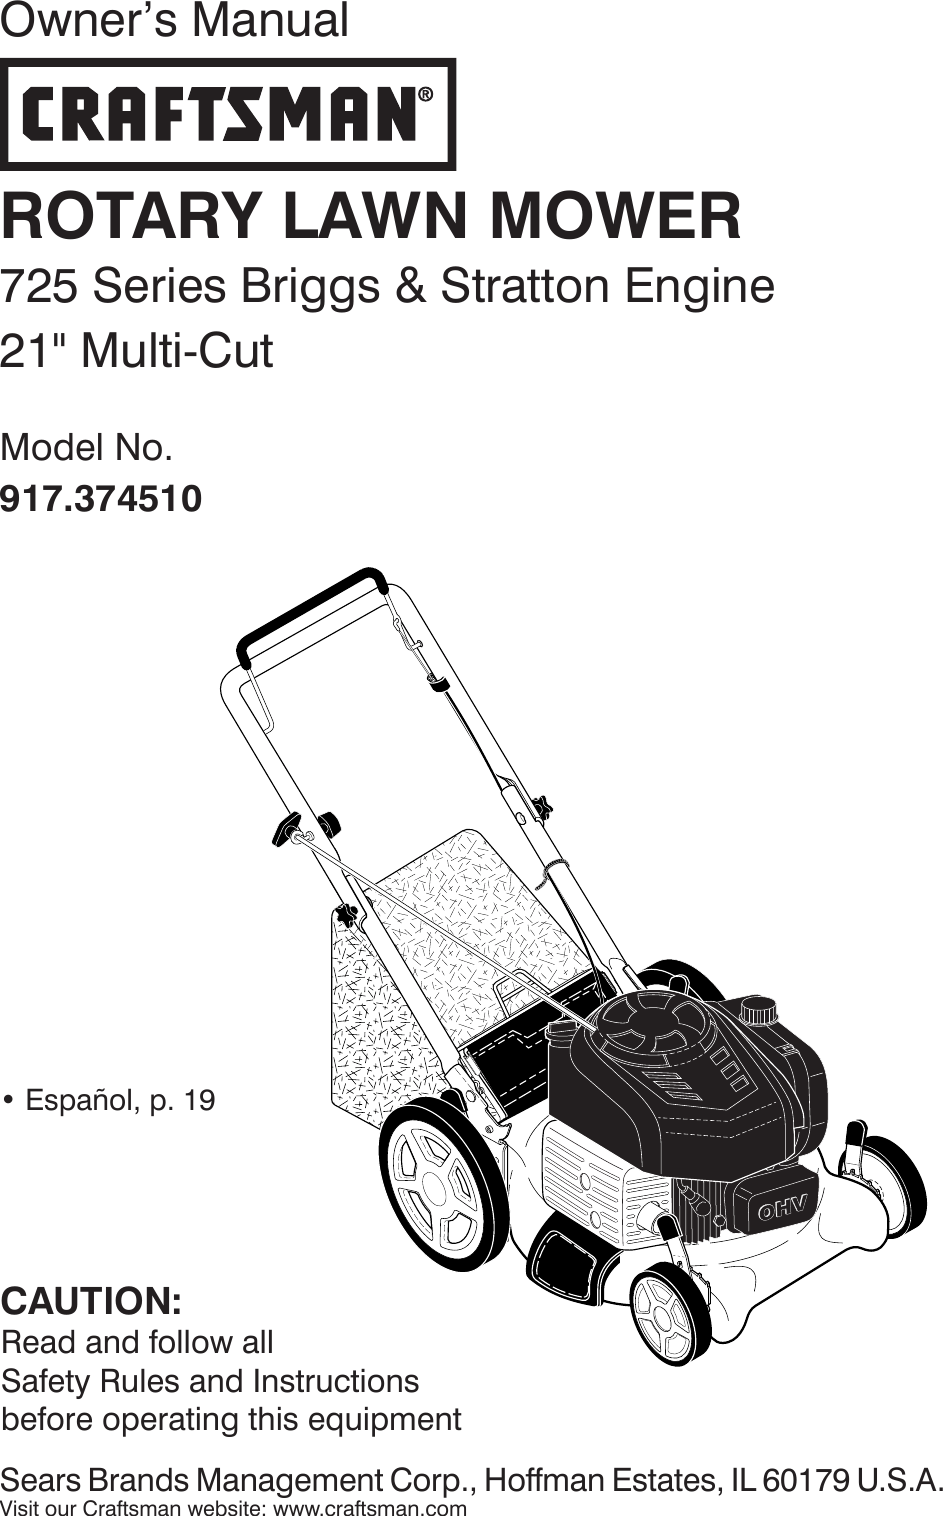 Craftsman 917374510 374510 es 579786102_r2 User Manual